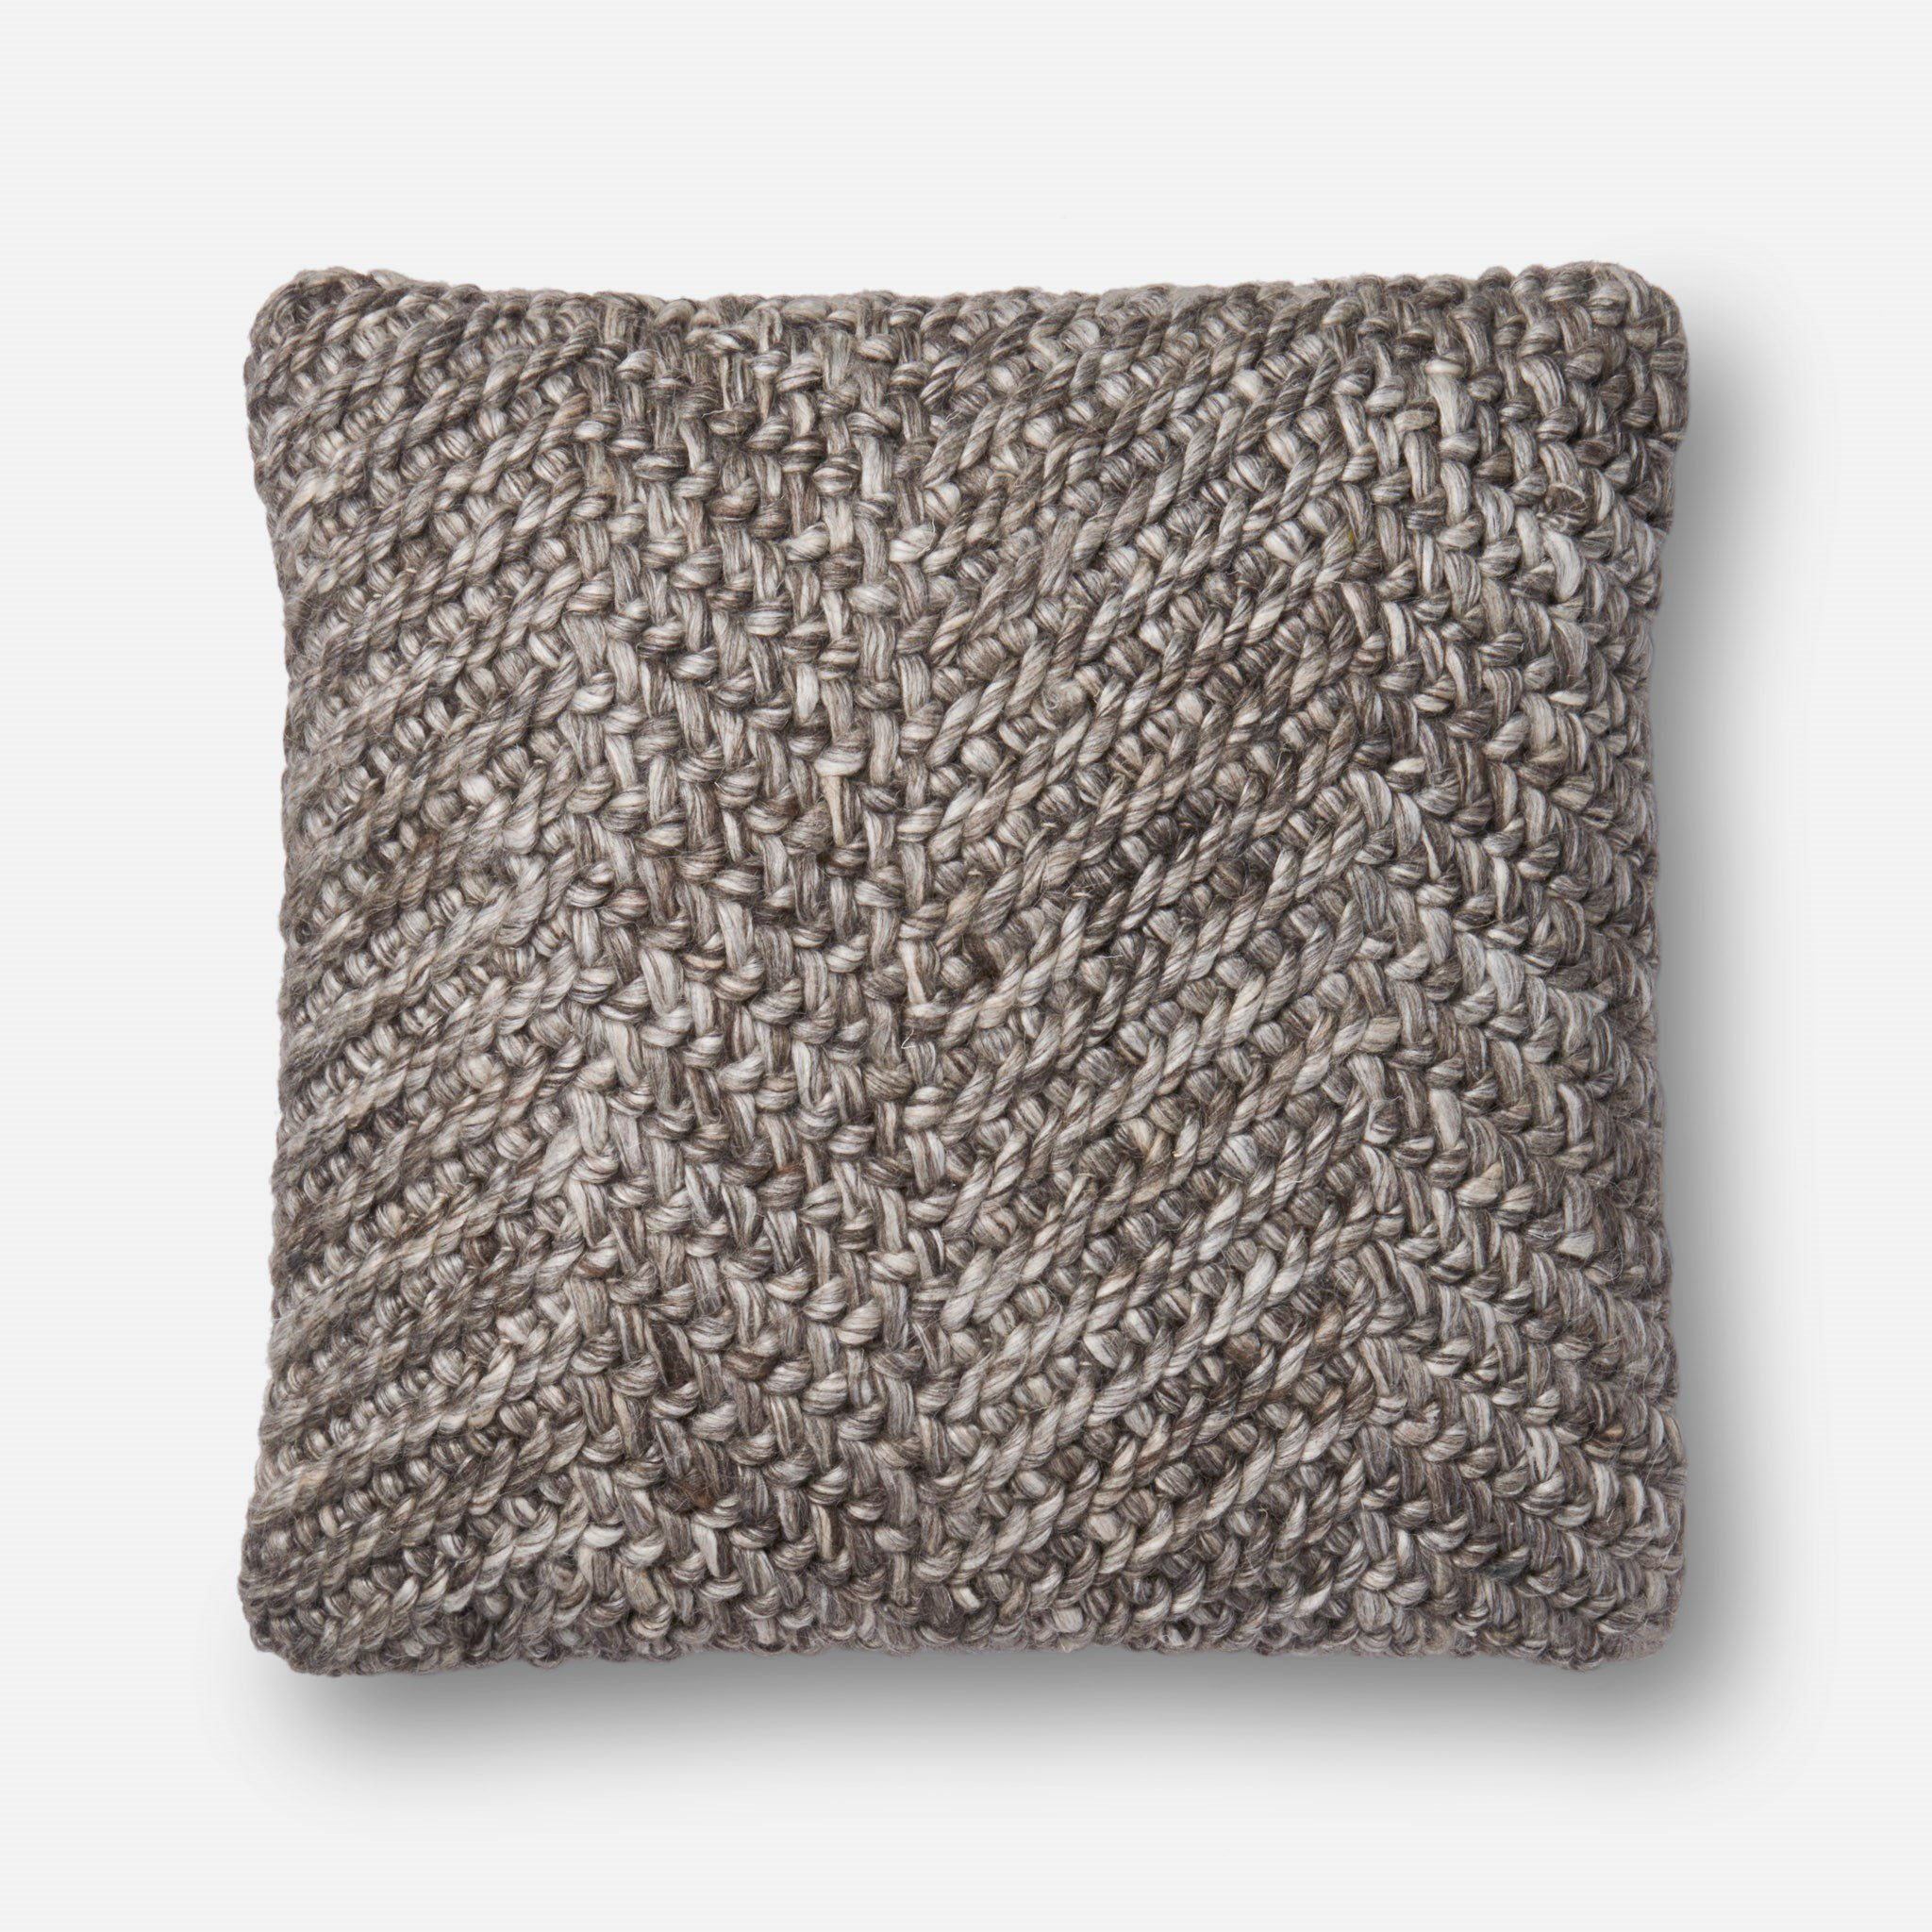 Loloi Pillow, Down Filled - Grey Pillow Cover, 22'' x 22''